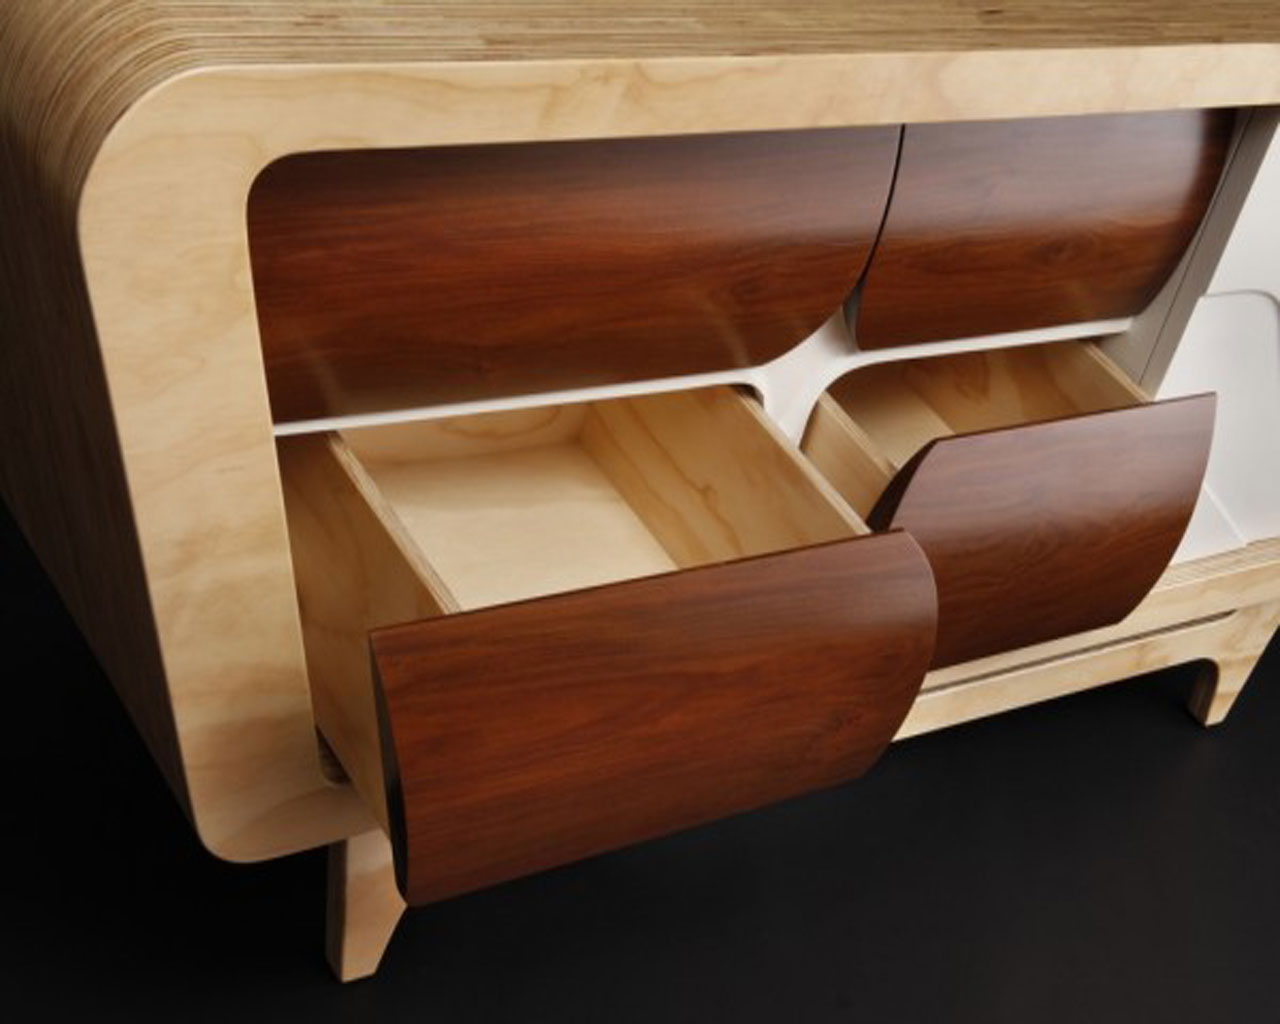 Contemporary furniture designs ideas for What is contemporary furniture style